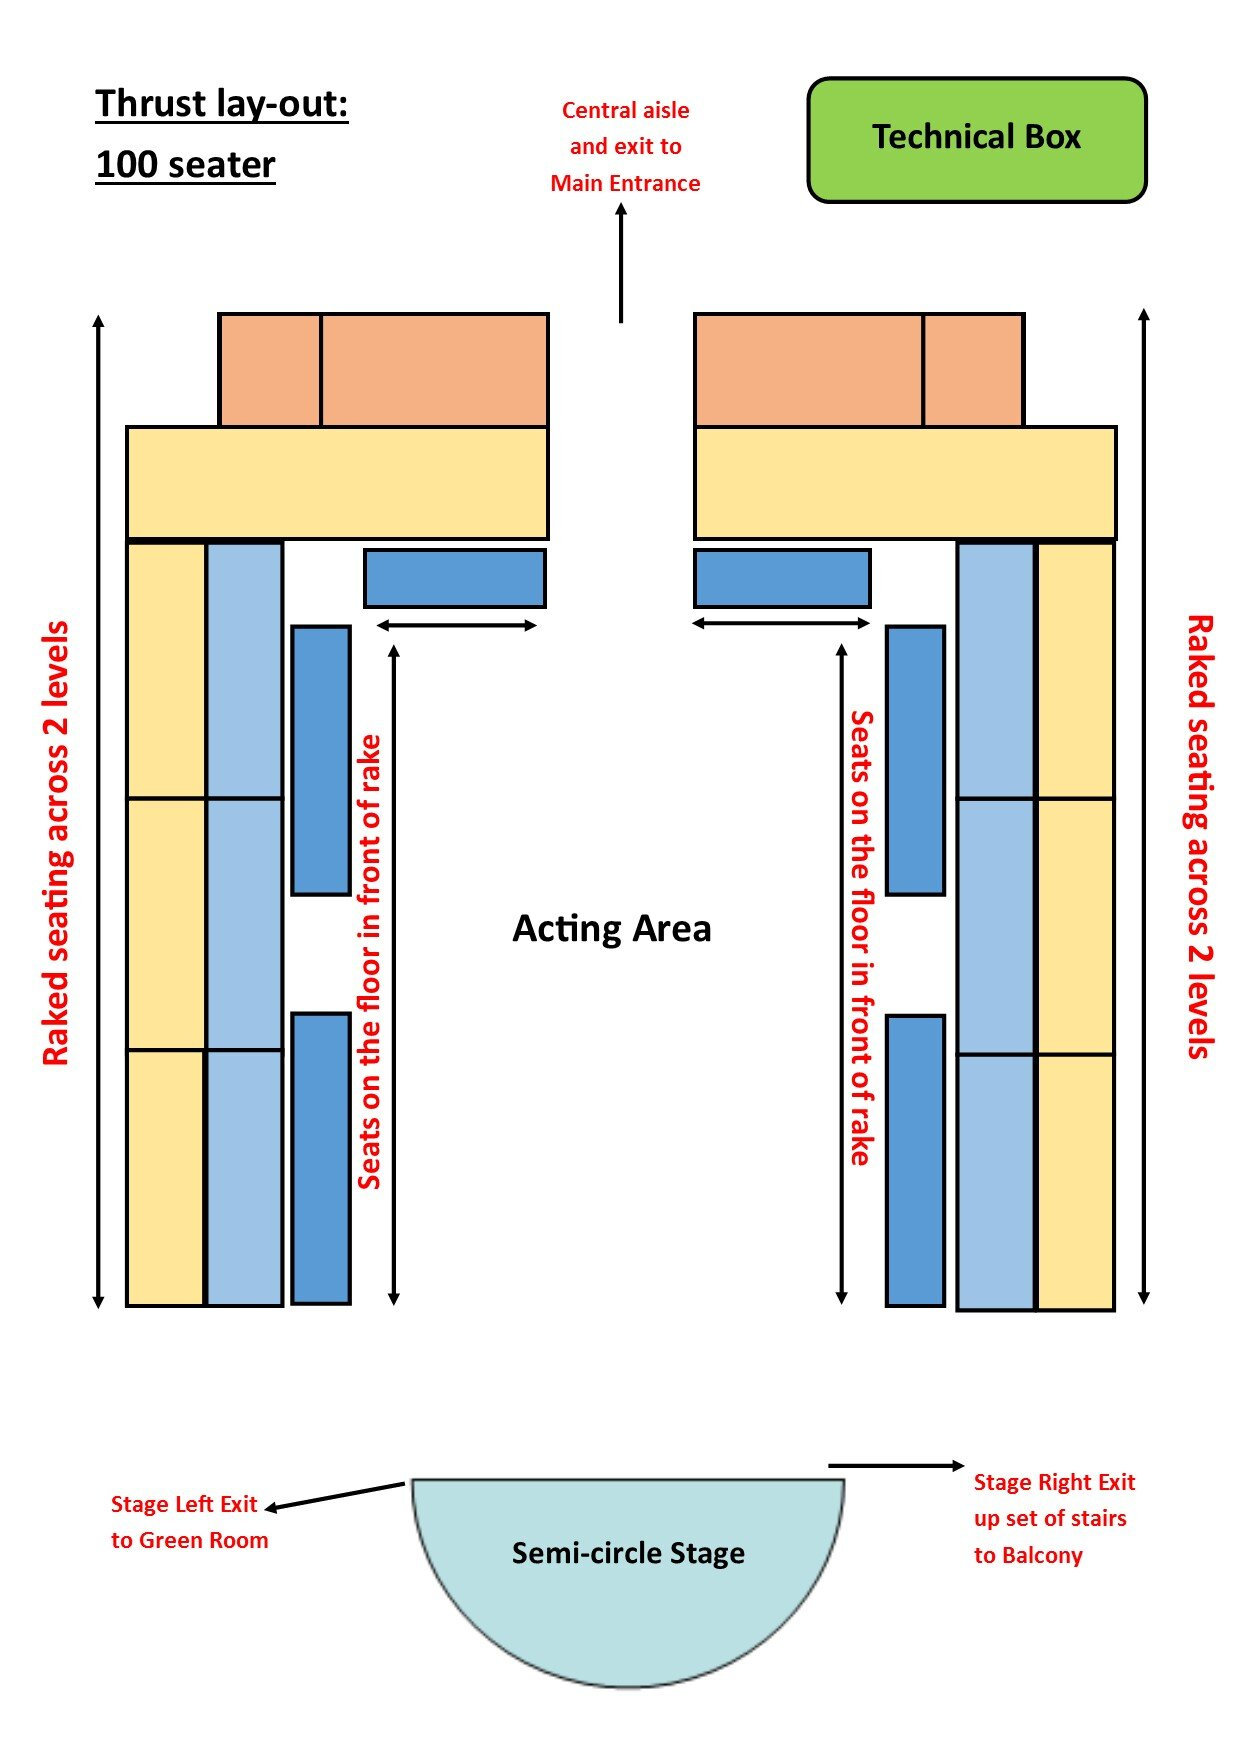 Thrust Lay-out 100.jpg